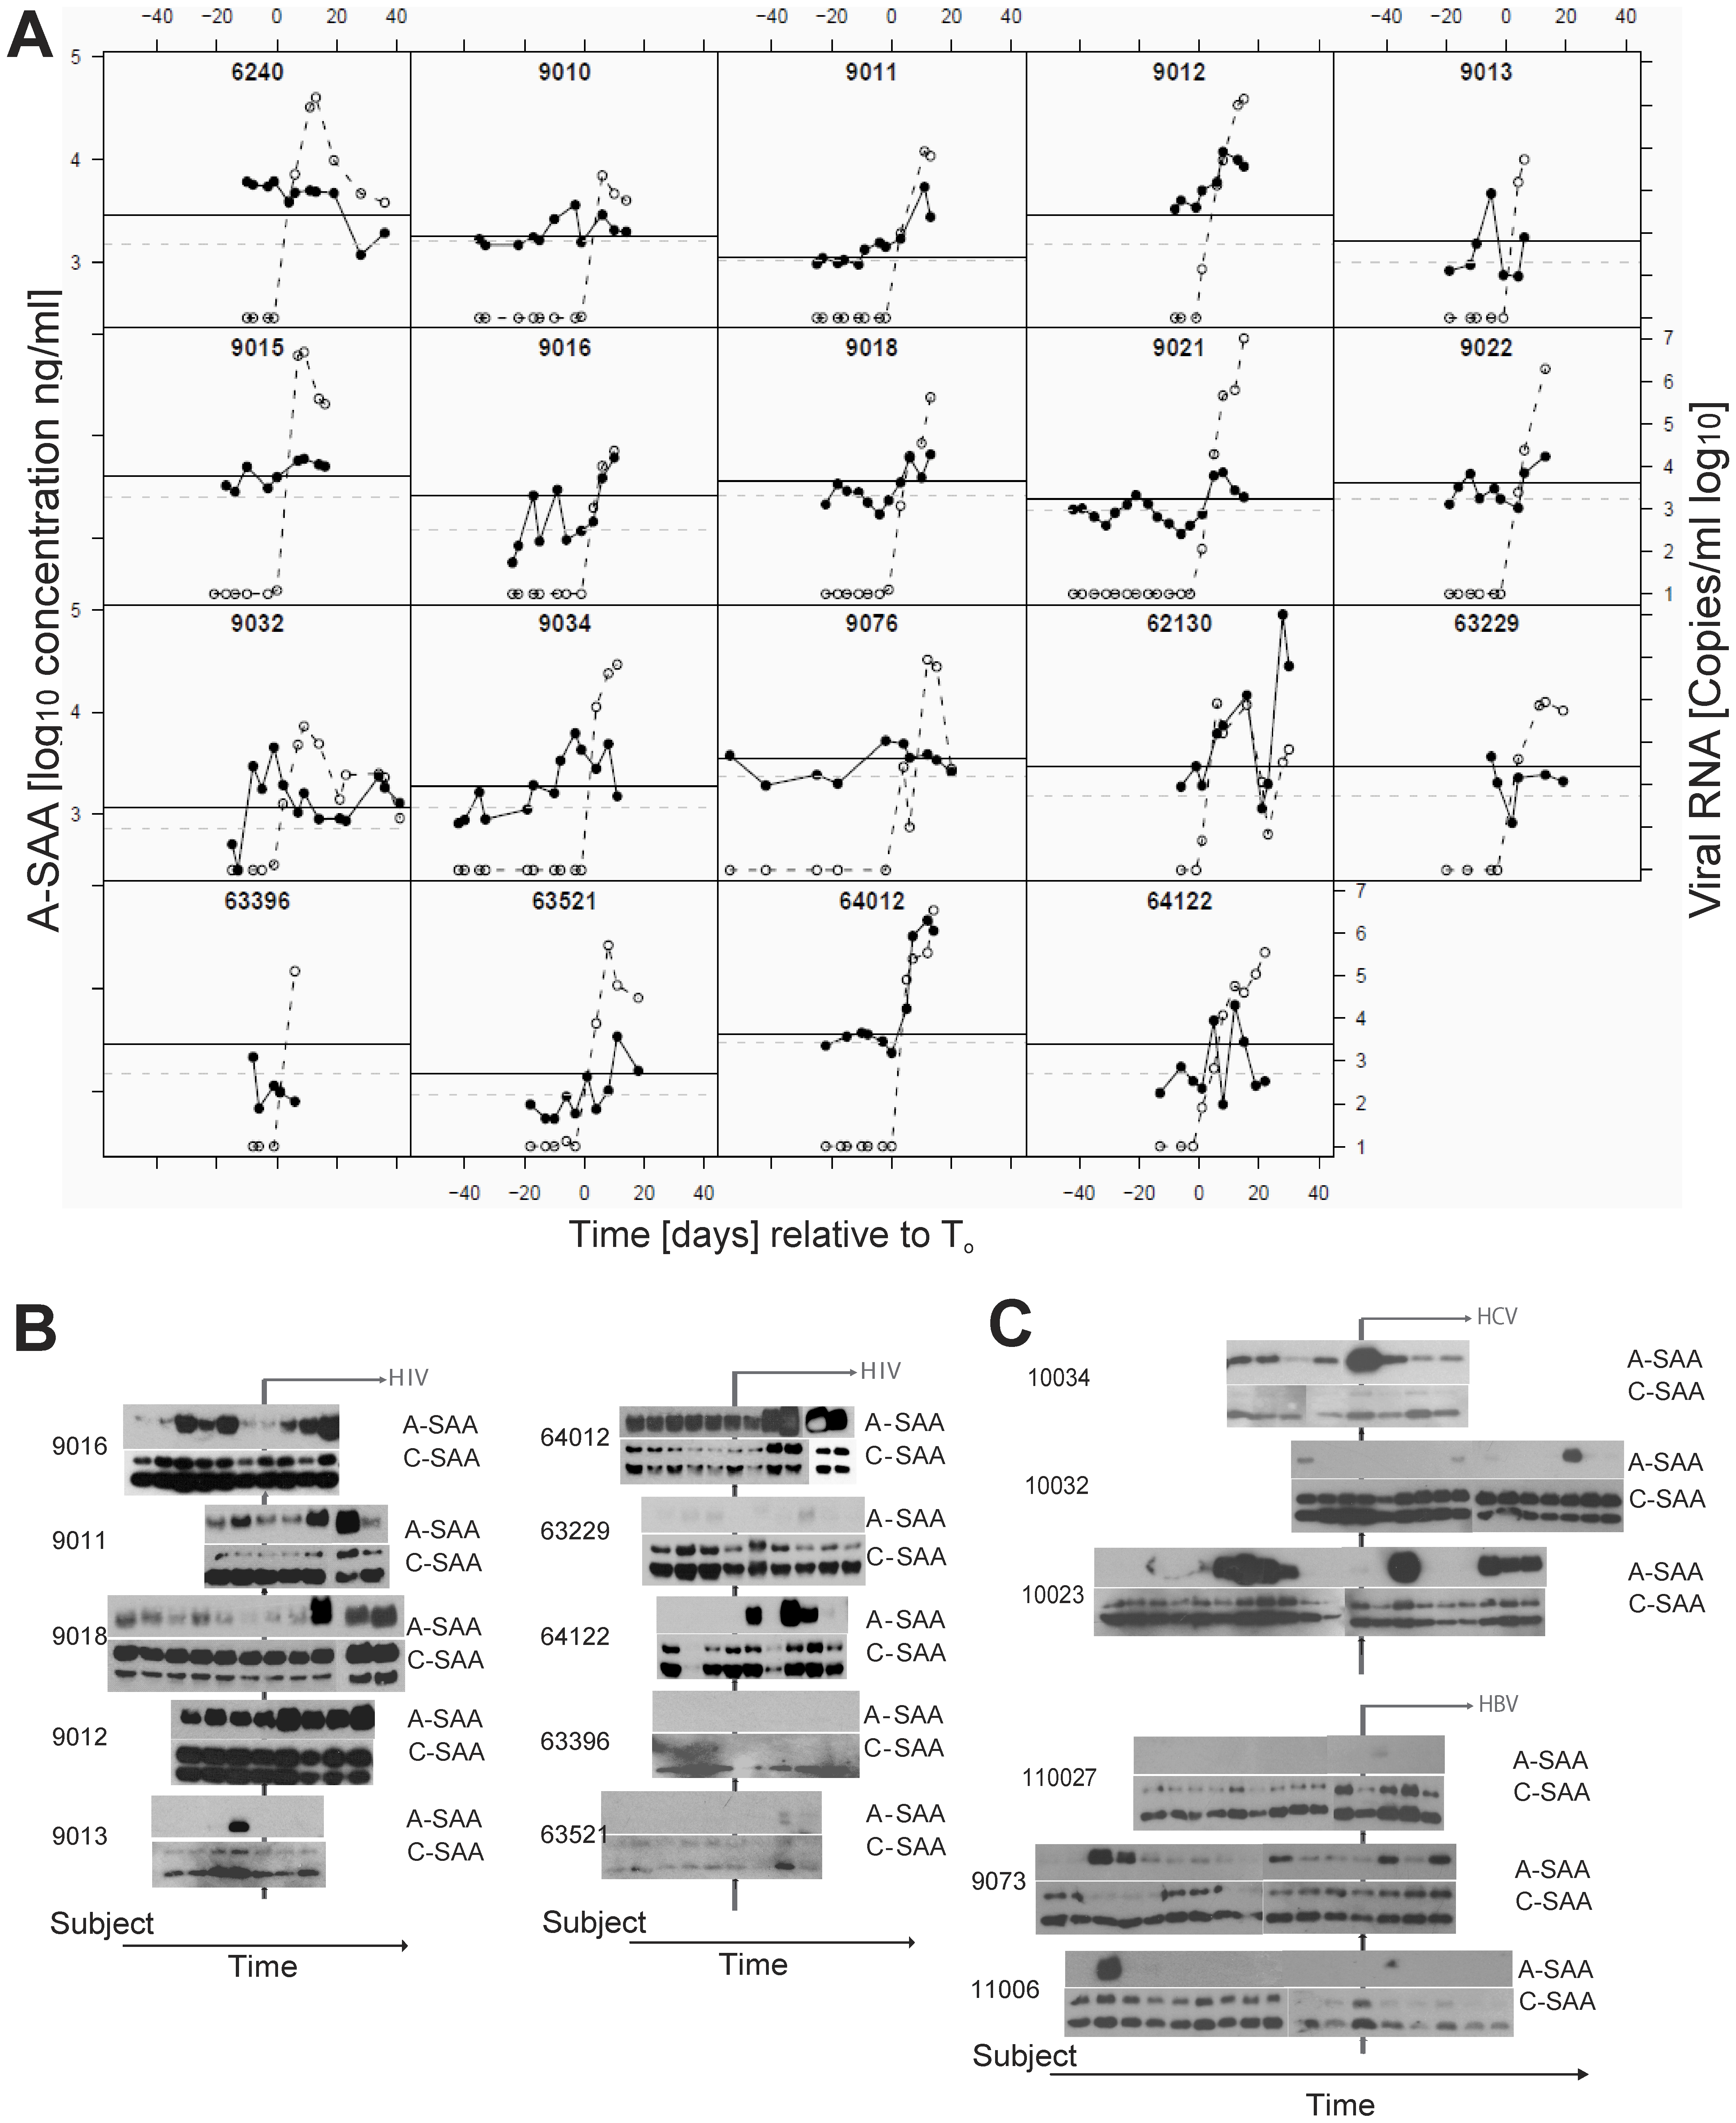 Kinetic analysis of A-SAA levels prior to and during HIV-1 viremia.